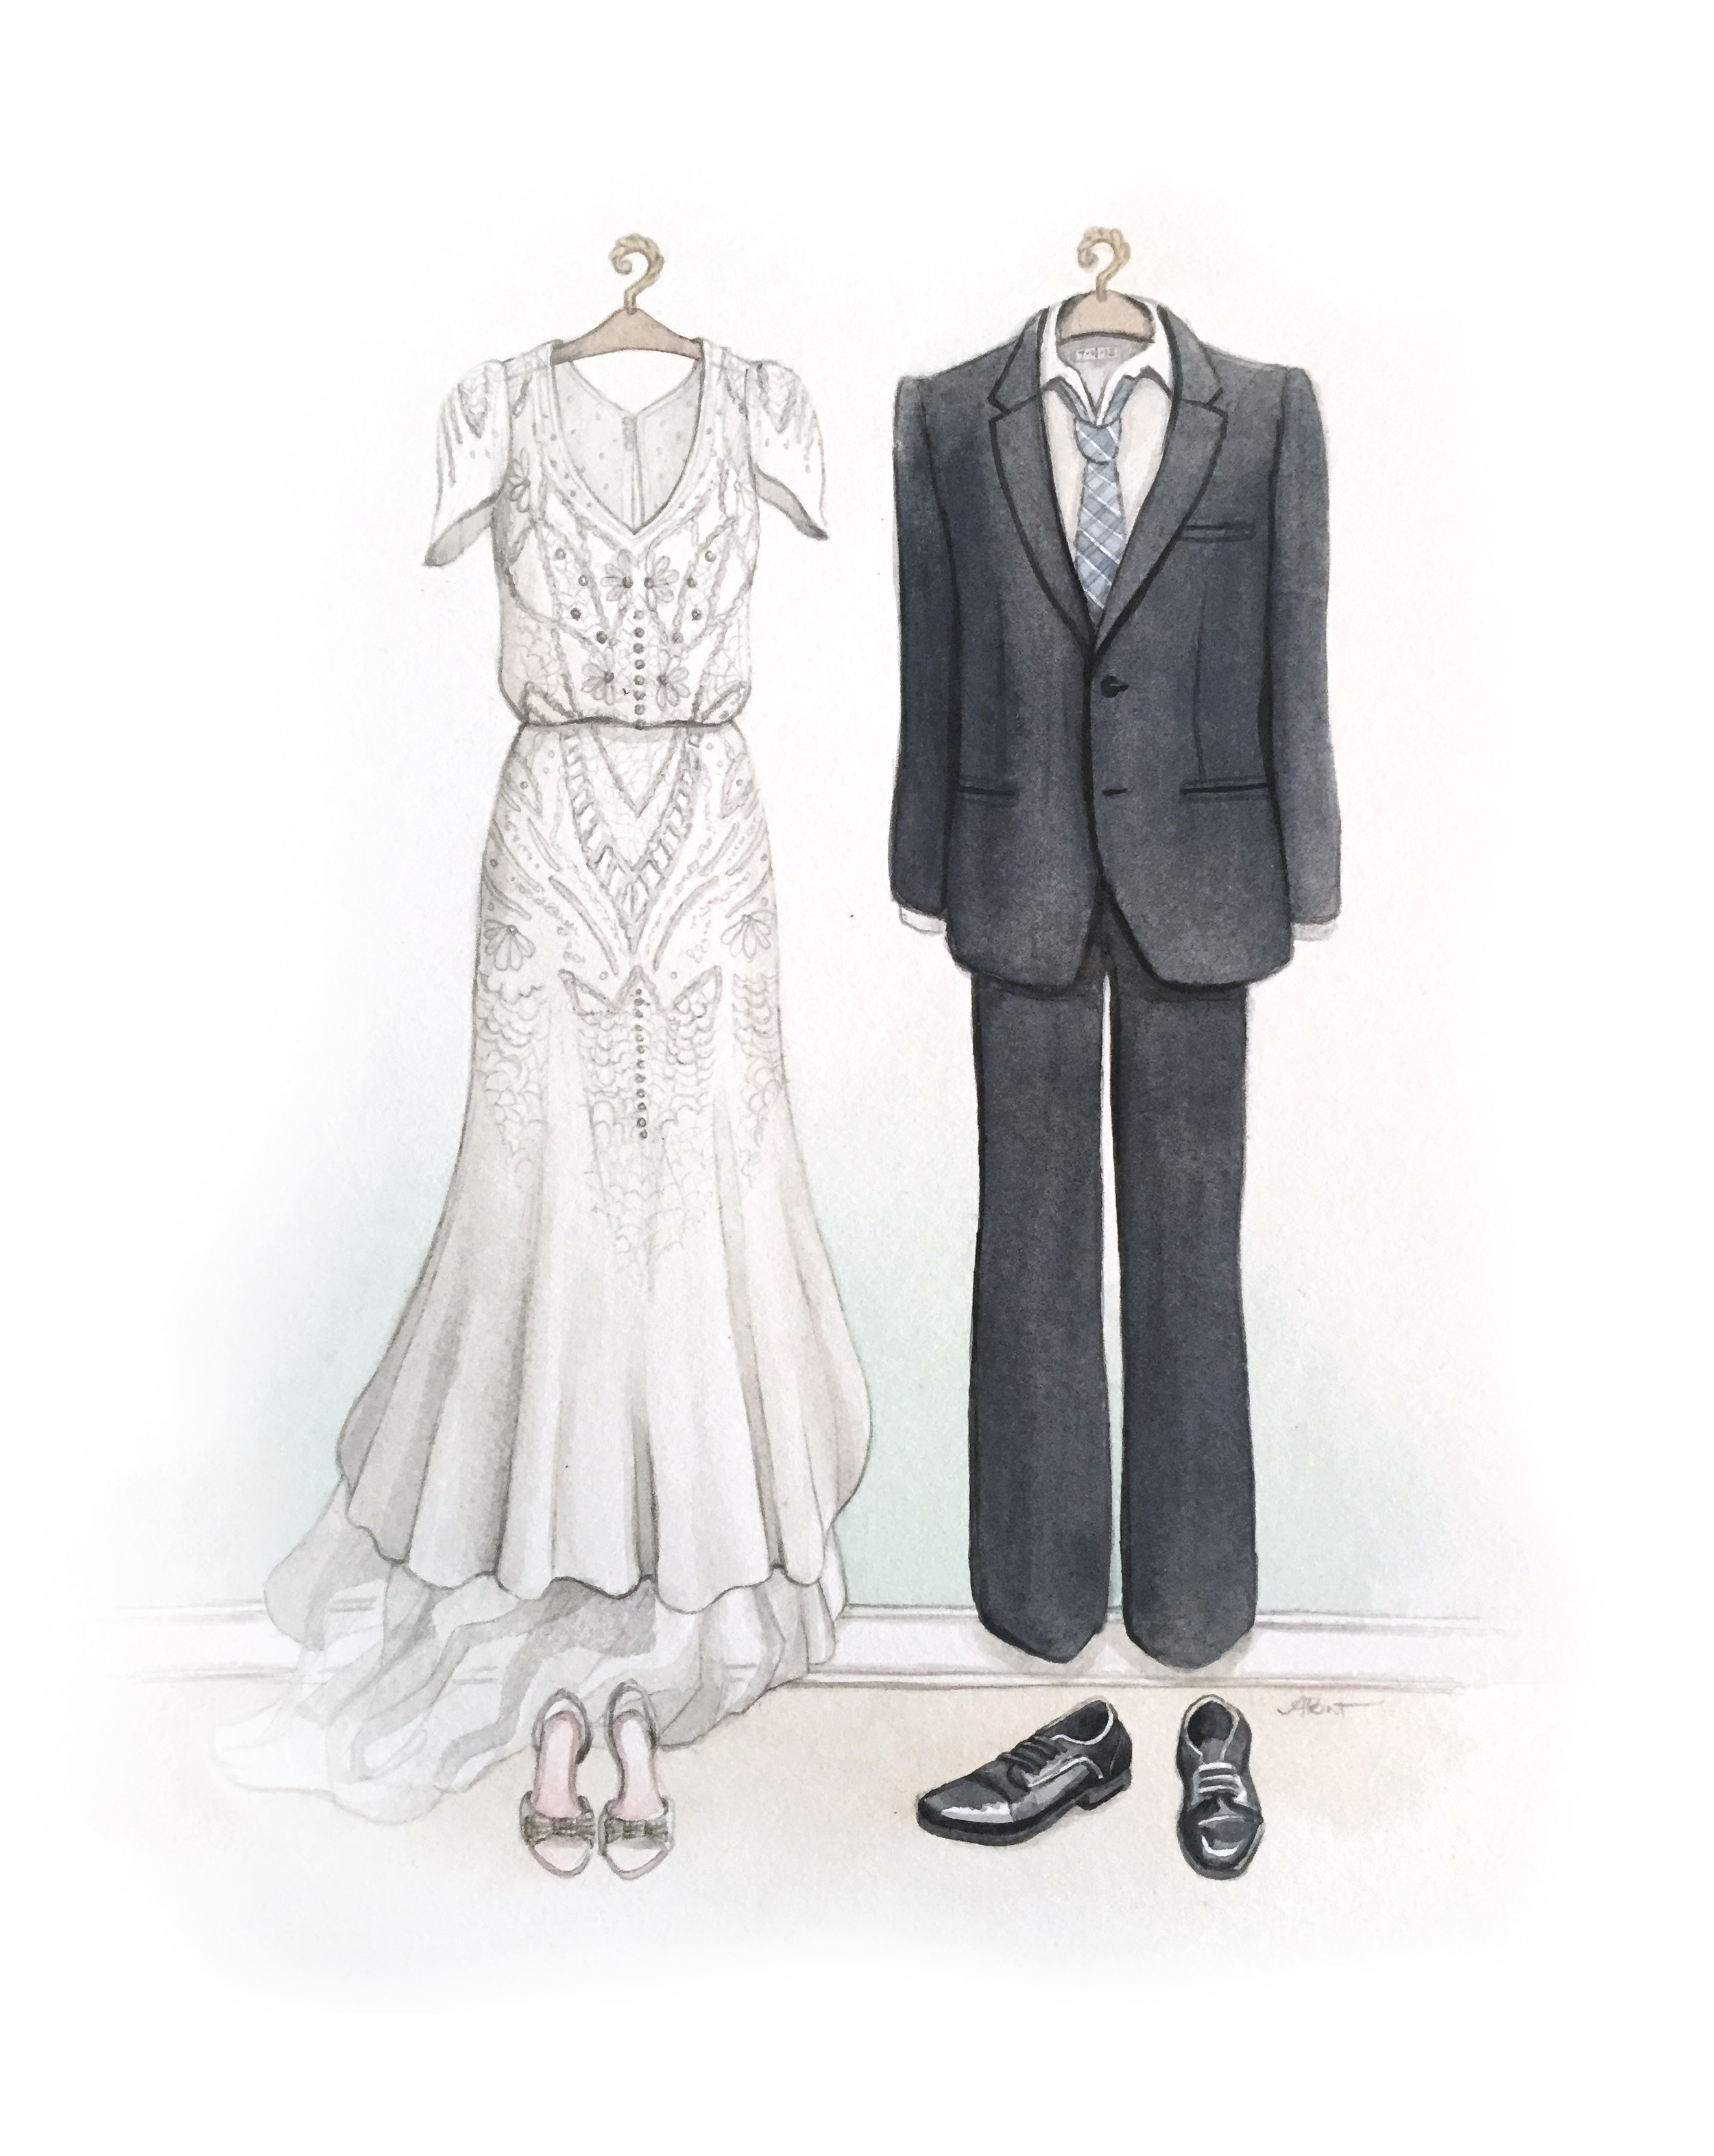 Custom Wedding Dress and Suit Watercolour Illustration by Alicia's Infinity - www.aliciasinfinity.com